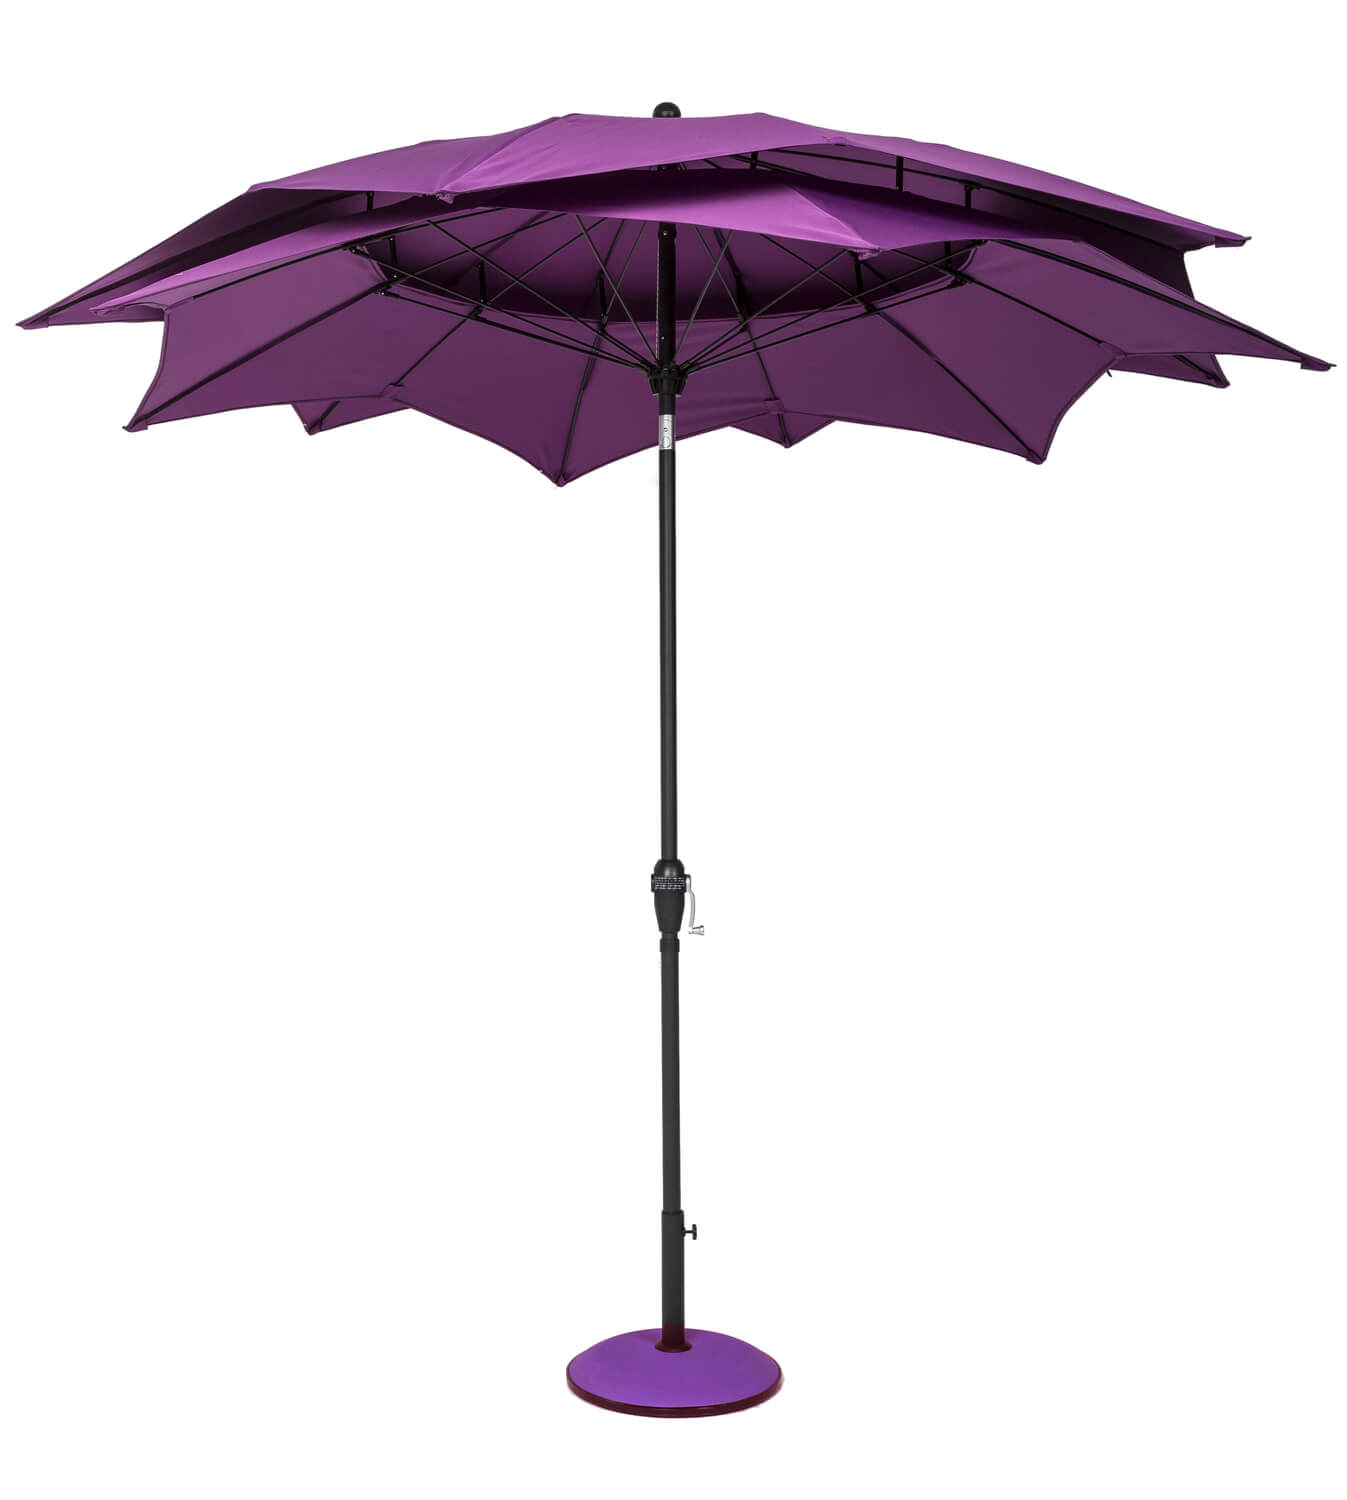 Norfolk Leisure 2 7m Round Lotus Garden Parasol Purple